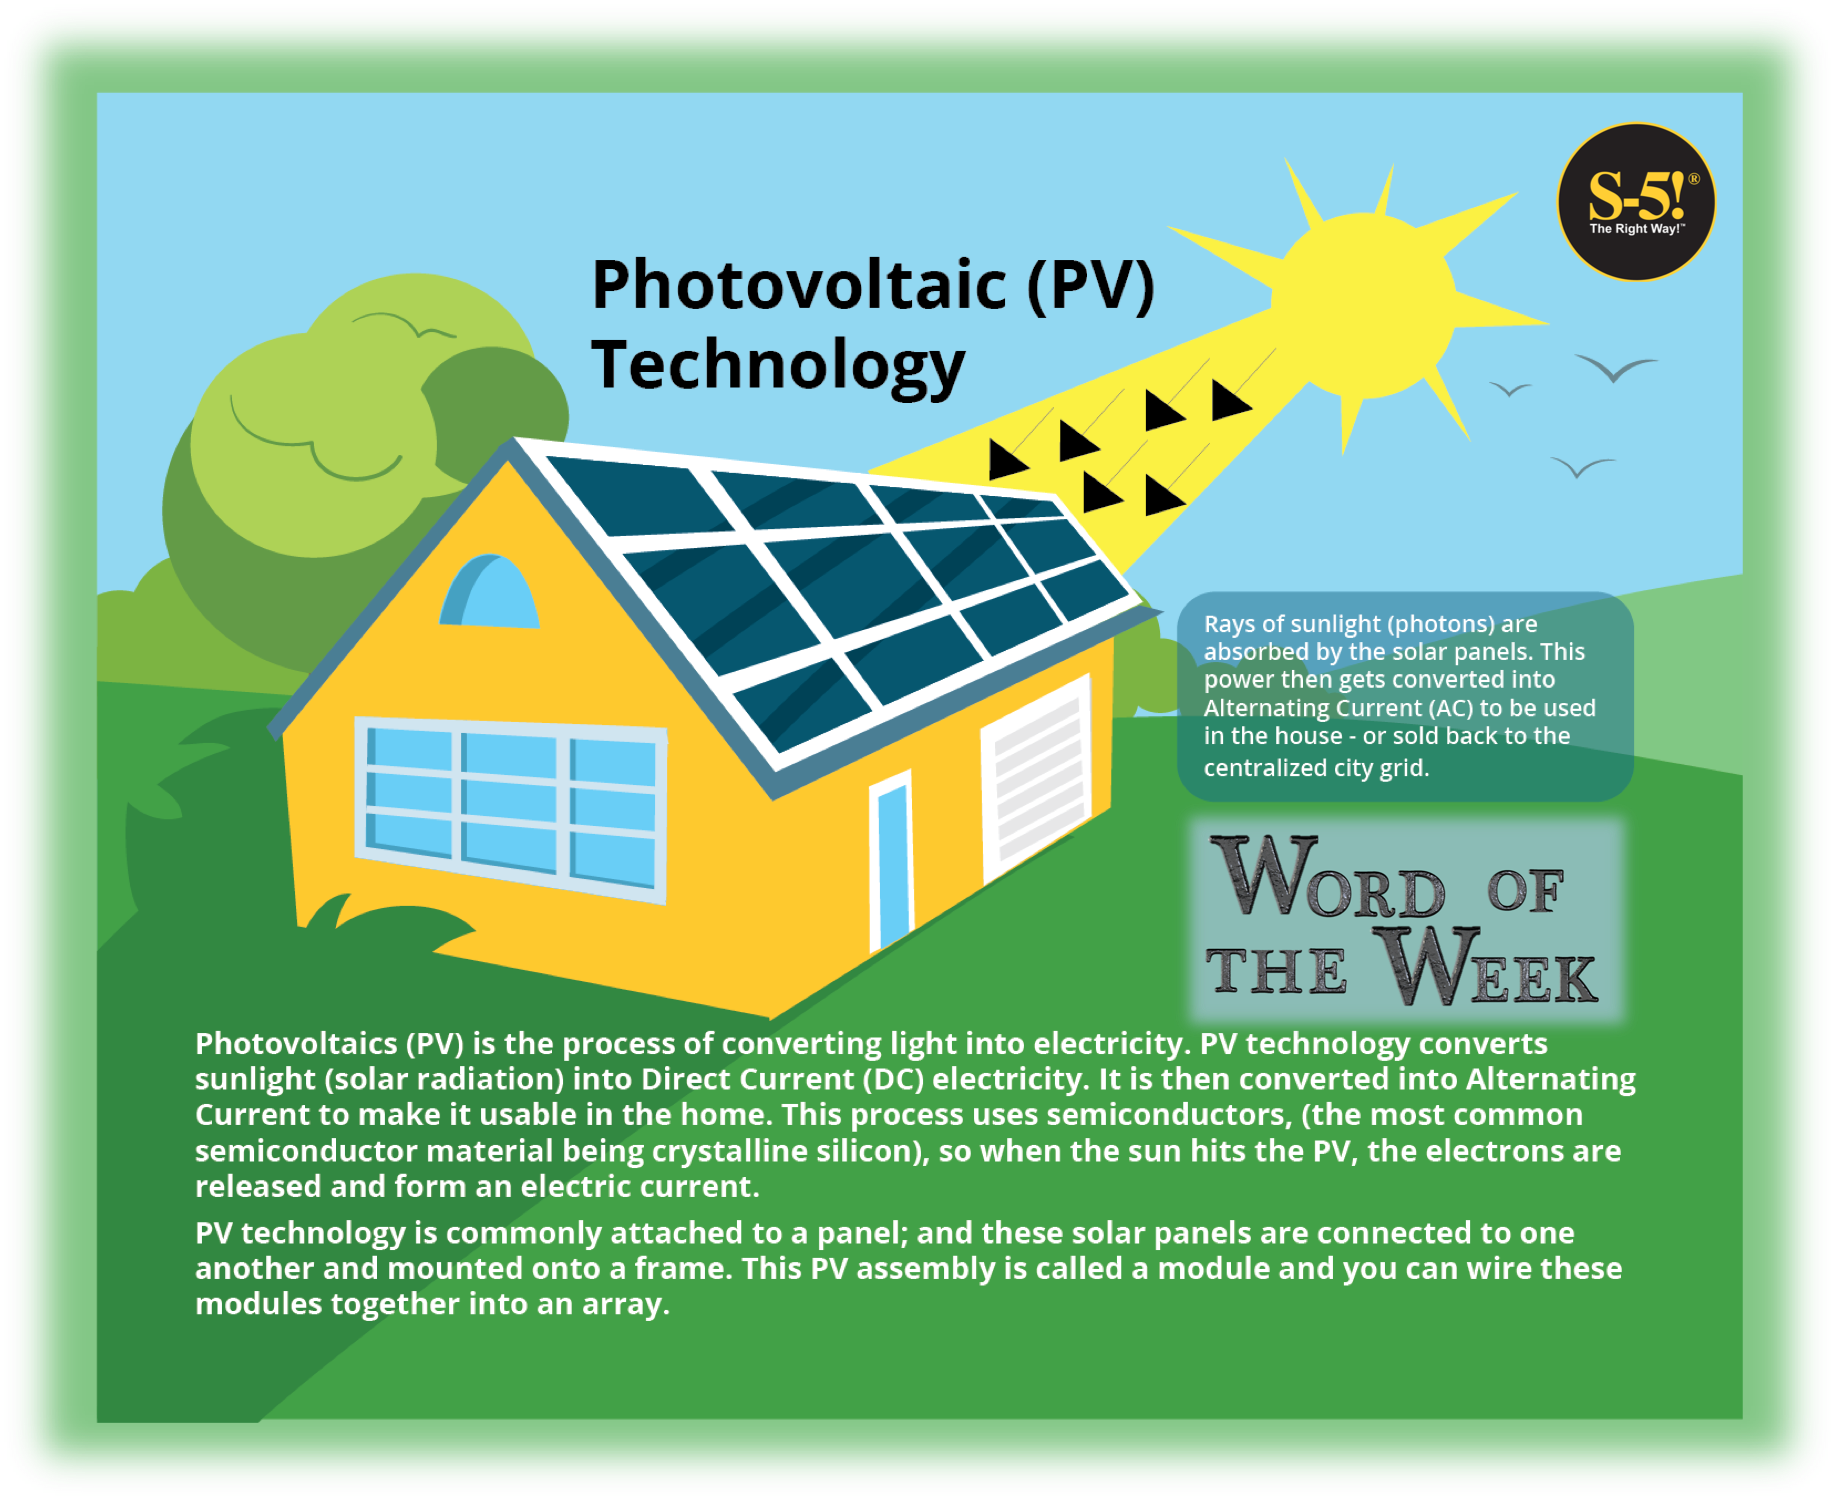 S-5!® - Word of the Week - Photovoltaics (PV) is the process of converting light into electricity. PV technology converts sunlight (otherwise known as solar radiation) into direct current electricity. This process uses semiconductors, (the most common semiconductor material being crystalline silicon), so when the sun hits the PV, the electrons are released and form an electric current.  Photovoltaic technology is commonly attached to a panel; and these solar panels are connected to one another and mounted onto a frame. This PV assembly is called a module and you can wire these modules together into an array.